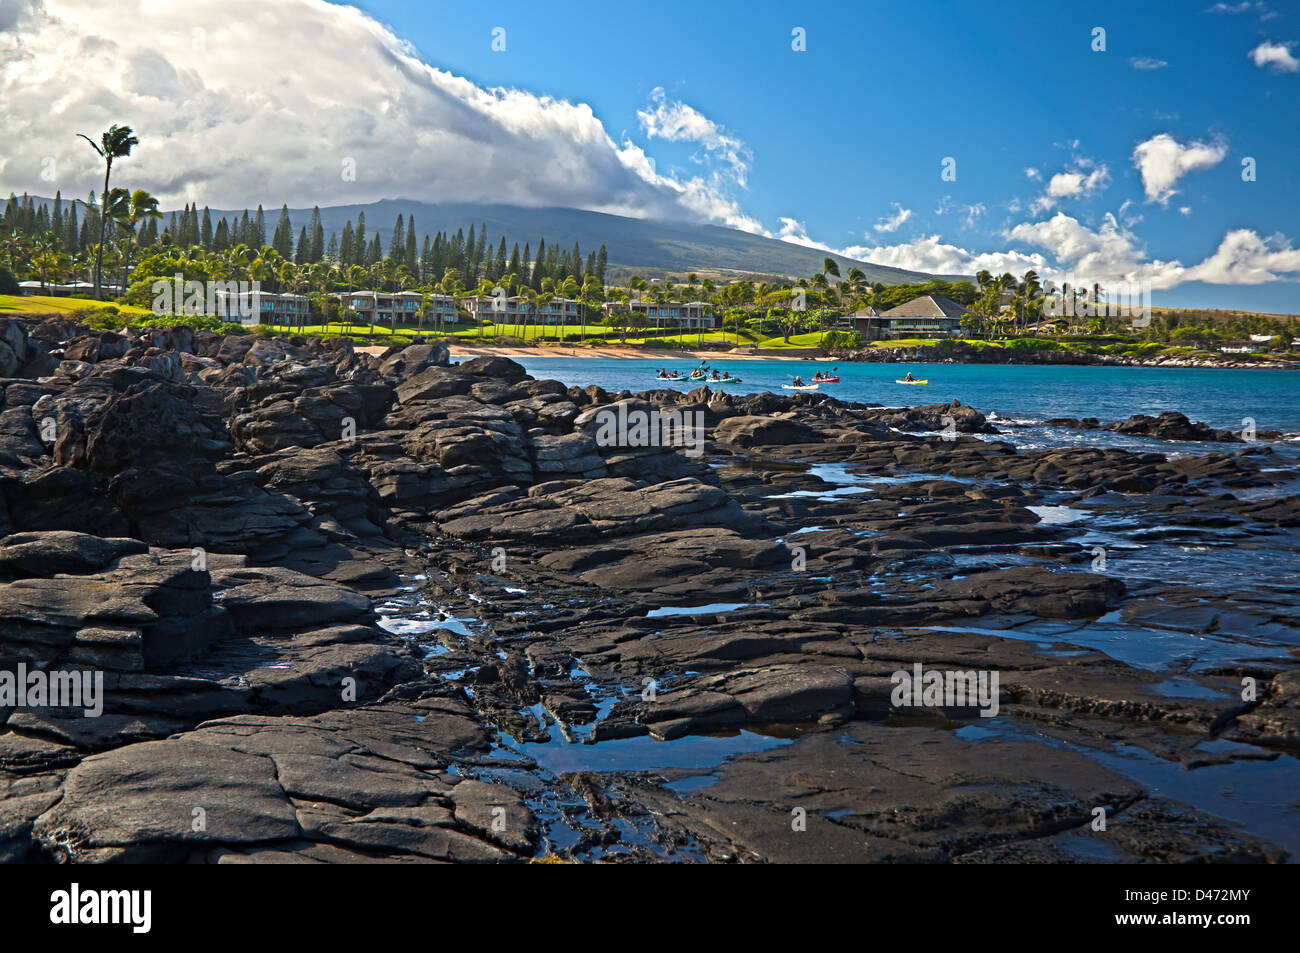 Kayak group in Kapalua Bay, Maui, Hawaii. Three images were digitally combined to create this HDR image. - Stock Image